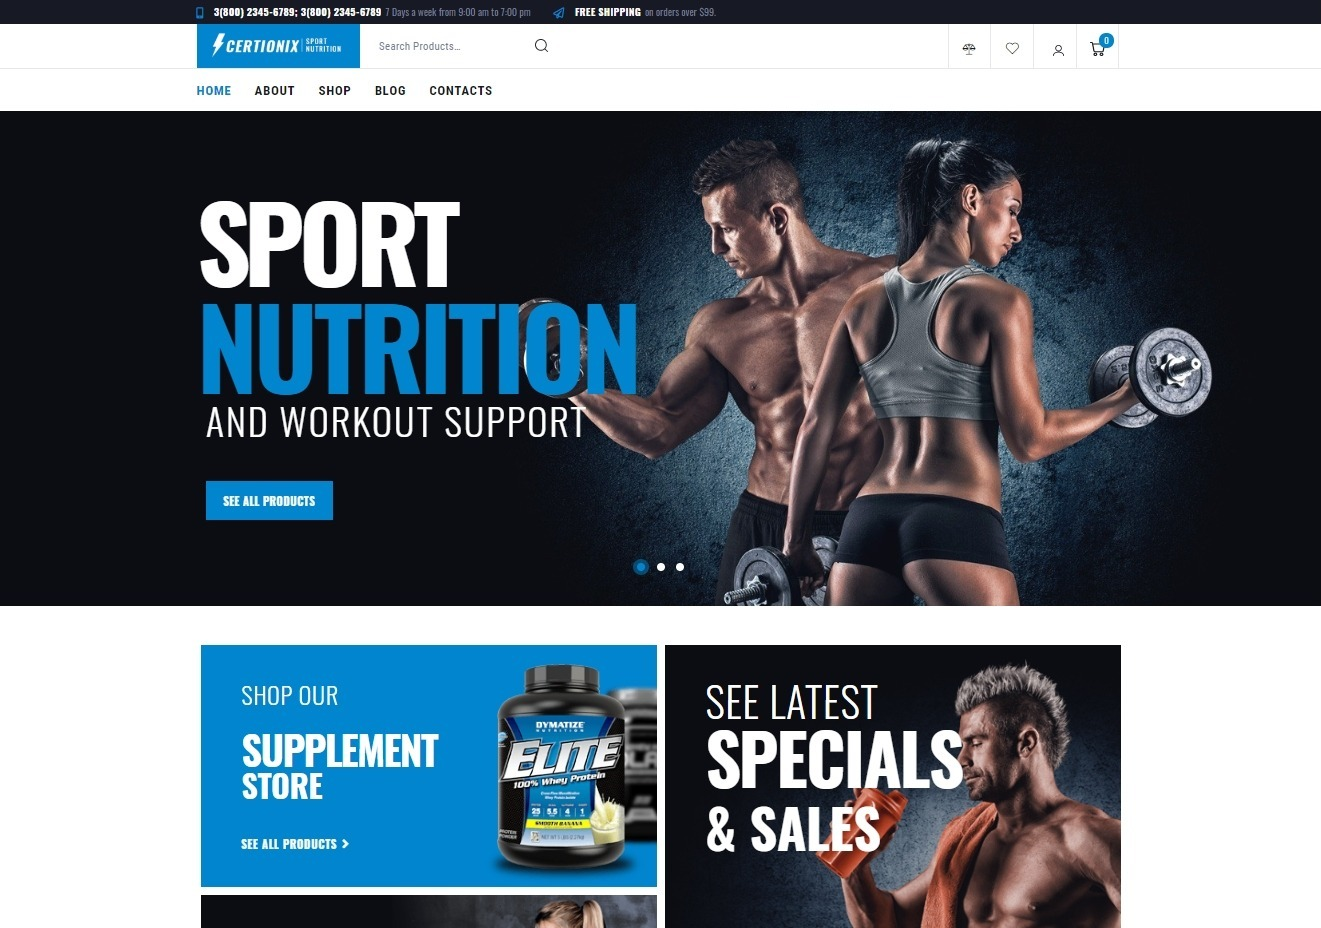 Certonix Sports Supplement and Nutrition Theme